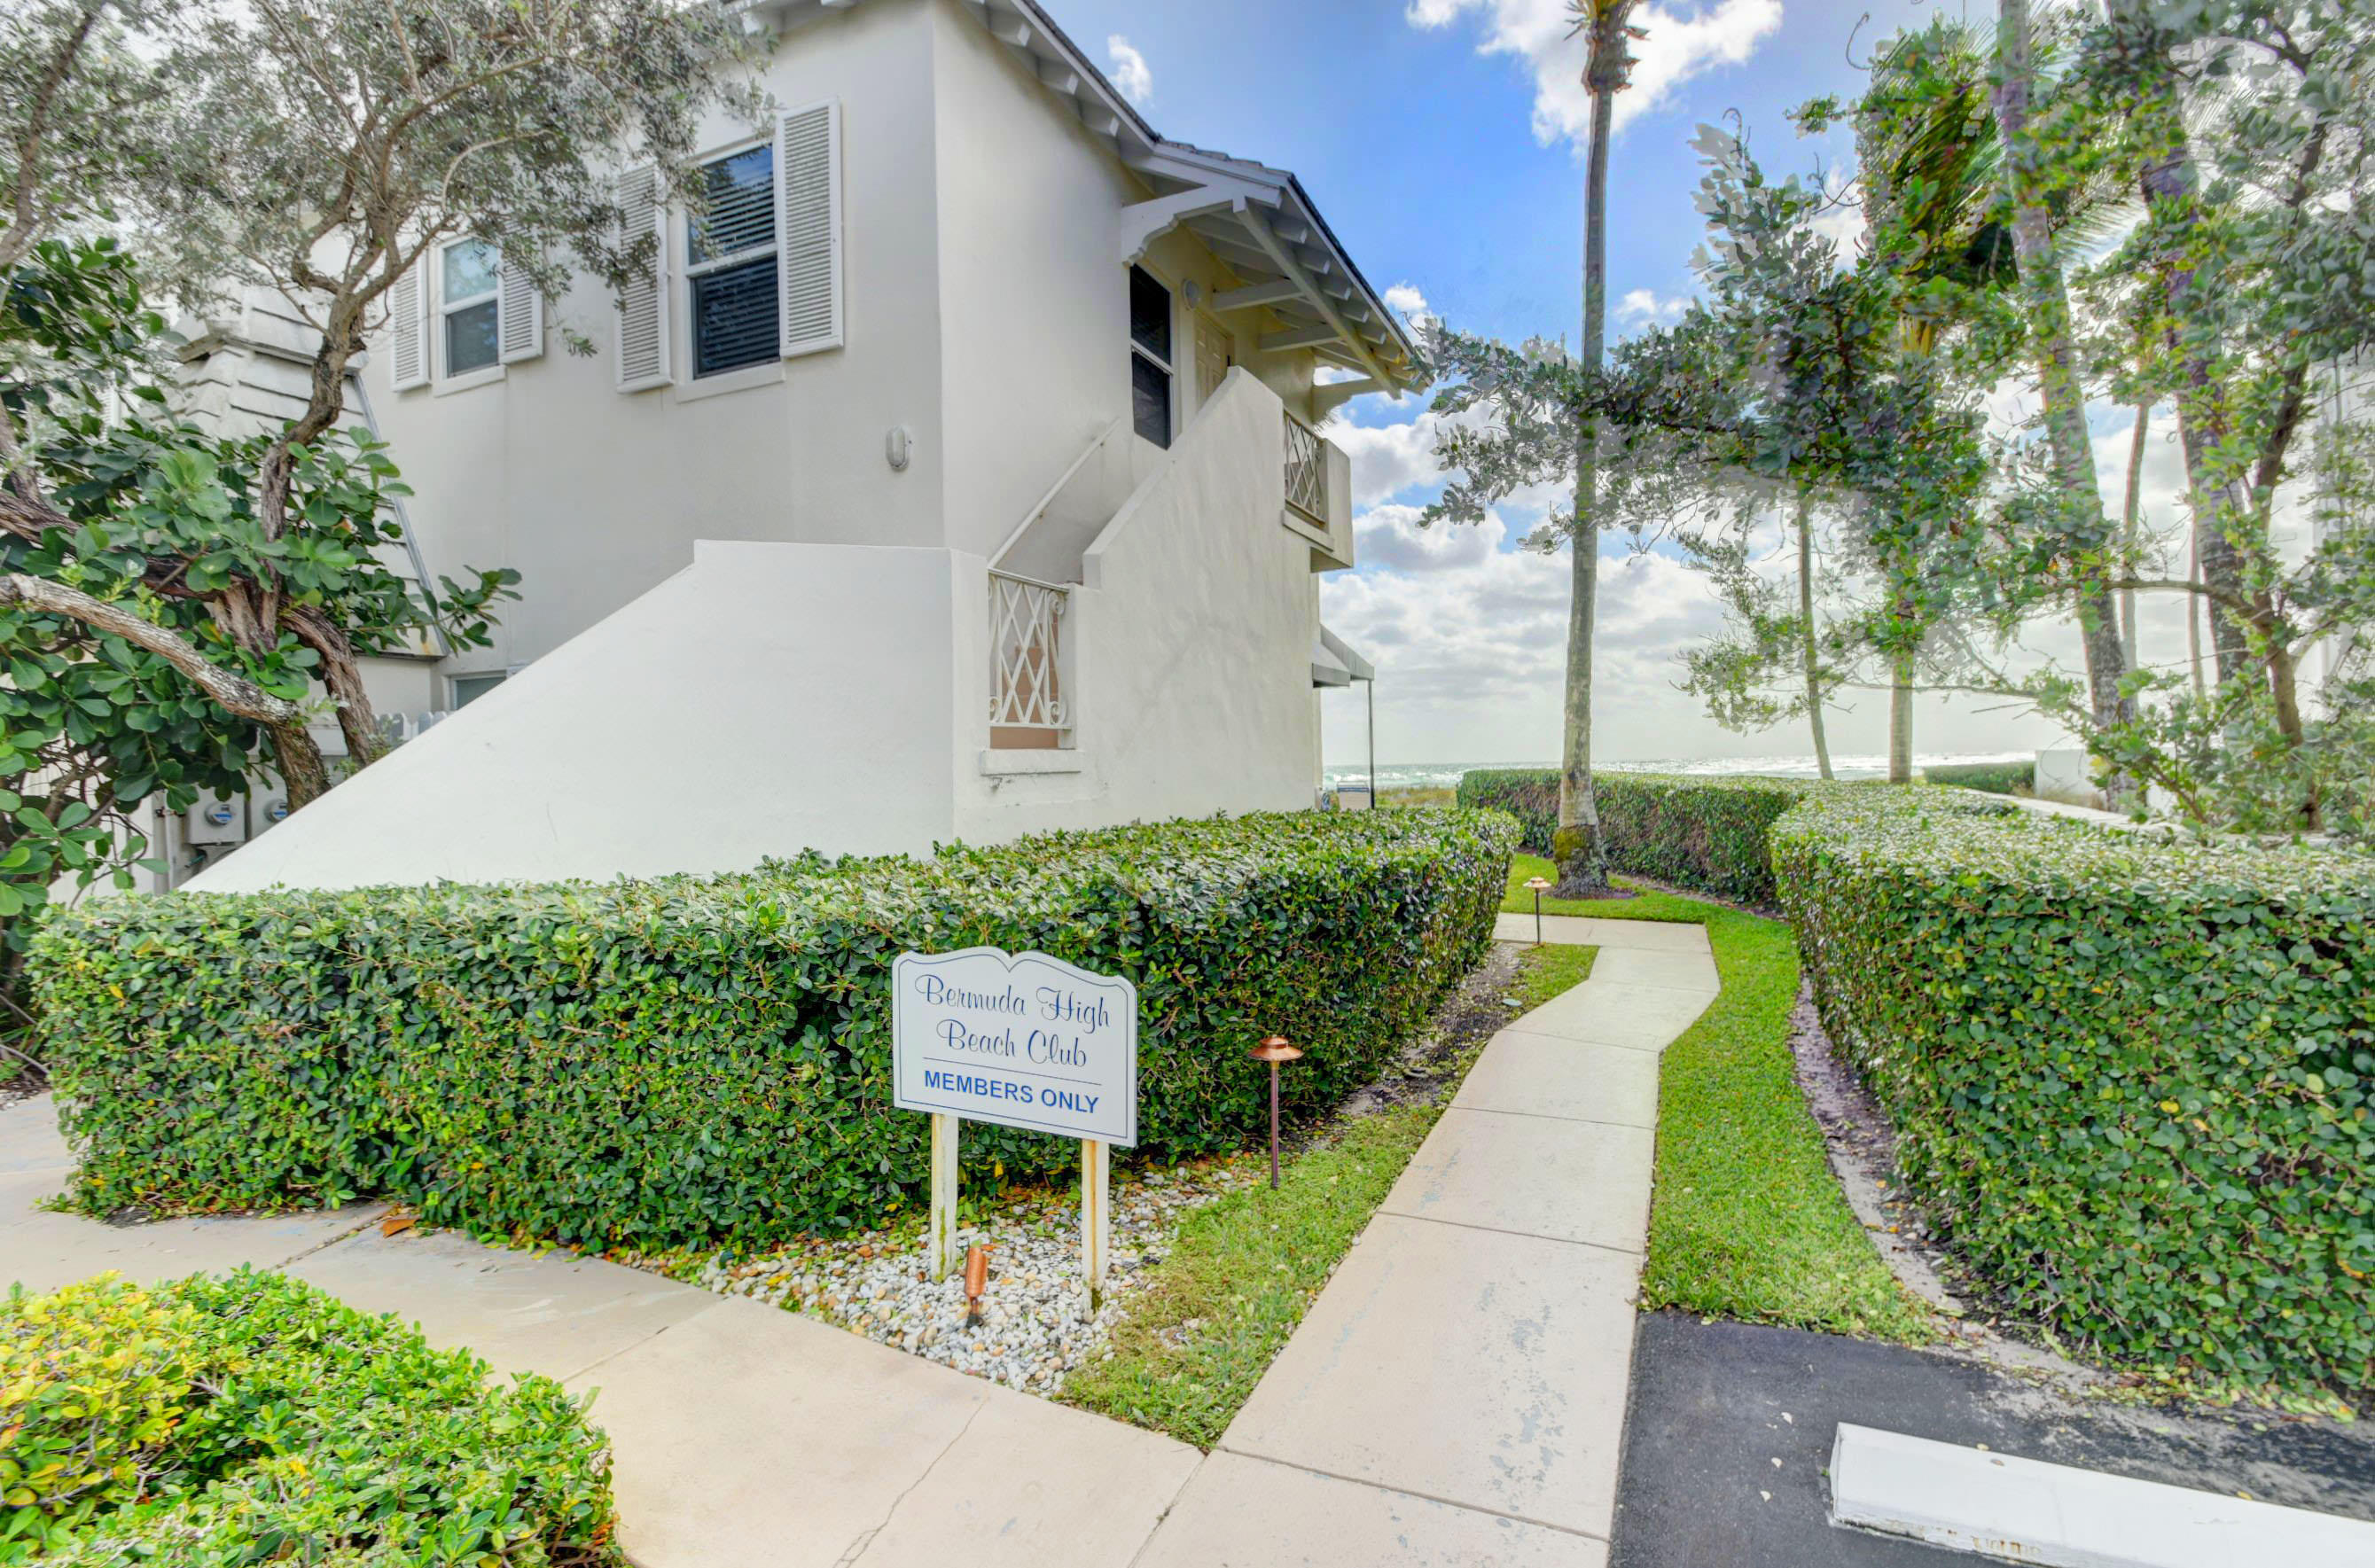 2150 Ocean Boulevard, Delray Beach, Florida 33483, 2 Bedrooms Bedrooms, ,2.1 BathroomsBathrooms,Condo/coop,For Sale,Ocean,RX-10546213